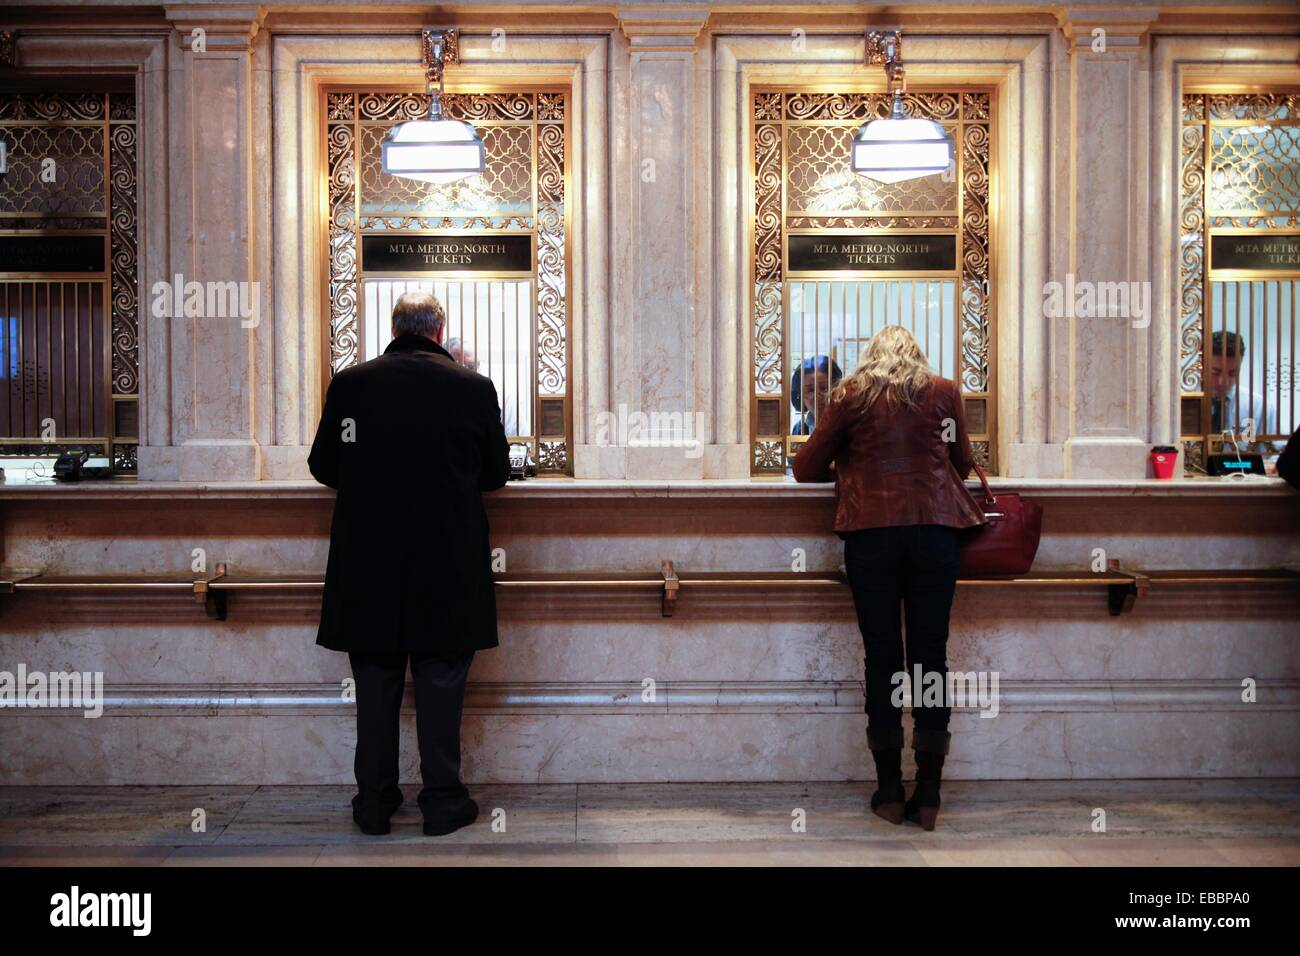 Man and Woman Separately Purchasing MTA-Metro North Commuter Railroad Tickets at Grand Central Station, New York, - Stock Image